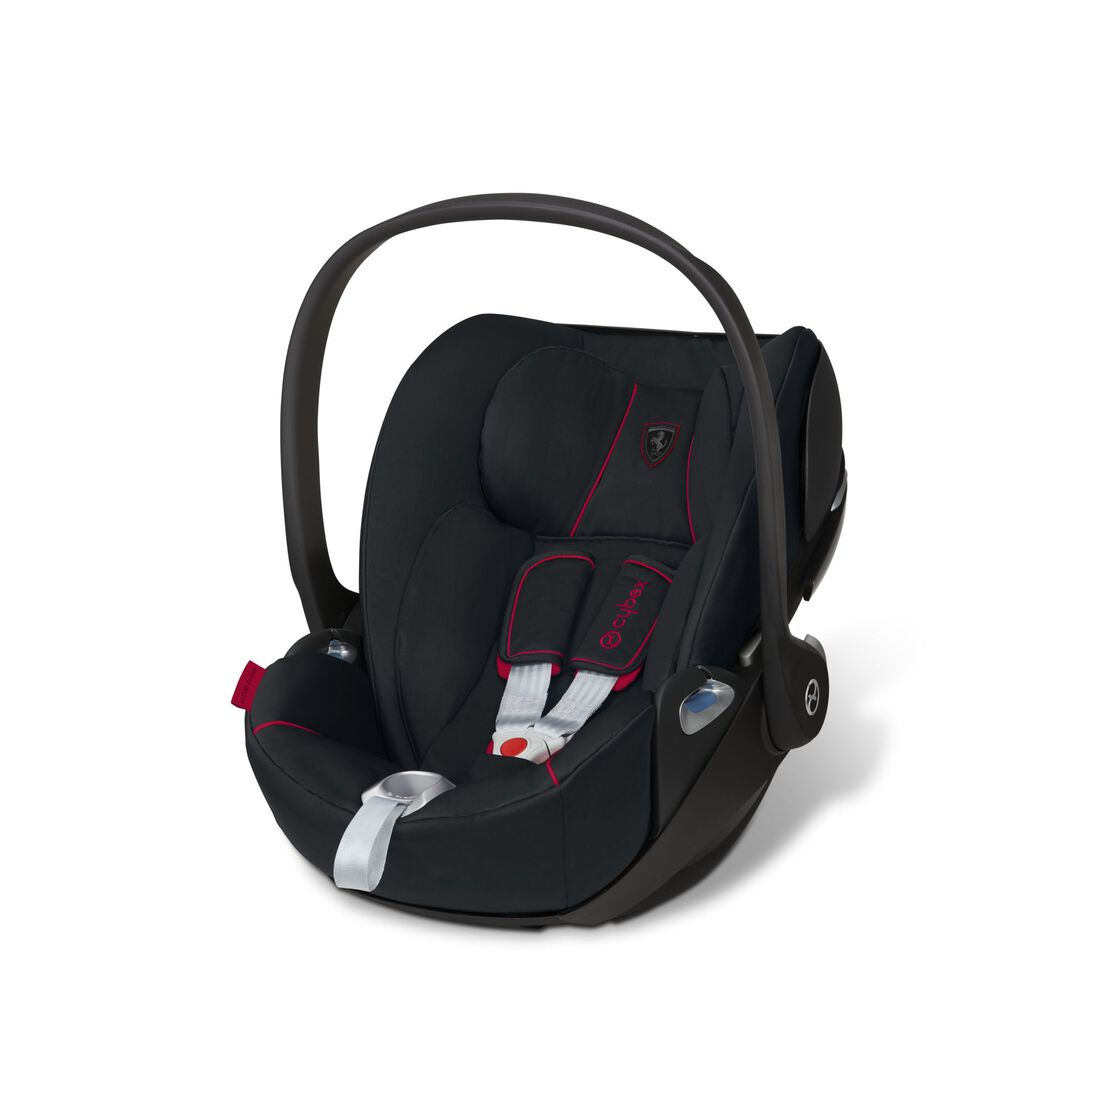 CYBEX Cloud Z i-Size - Ferrari Victory Black in Ferrari Victory Black large image number 2